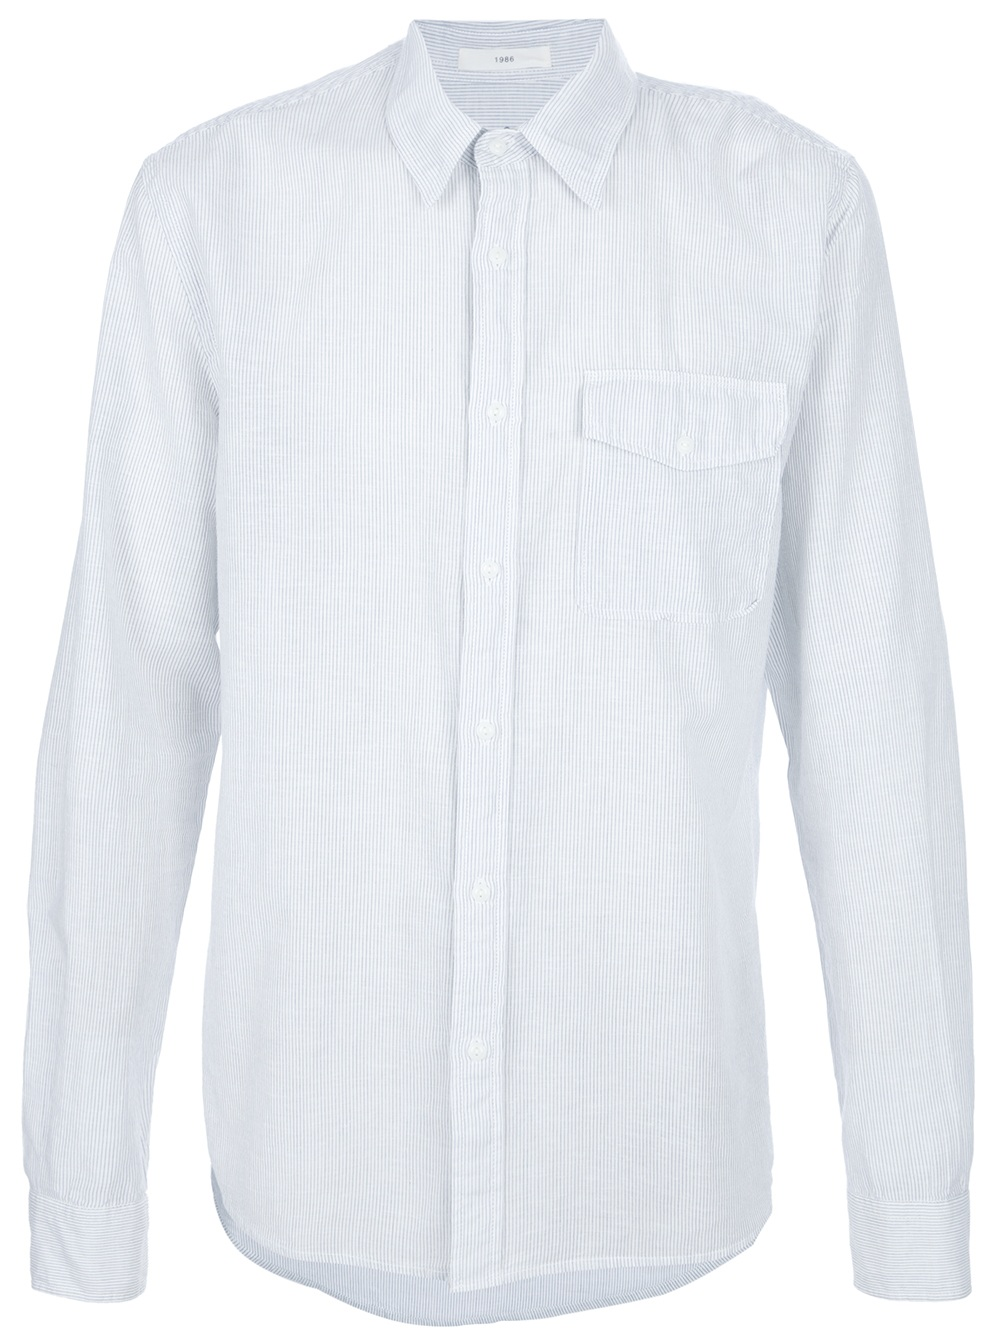 B D Baggies Foundry Shirt In White For Men Lyst